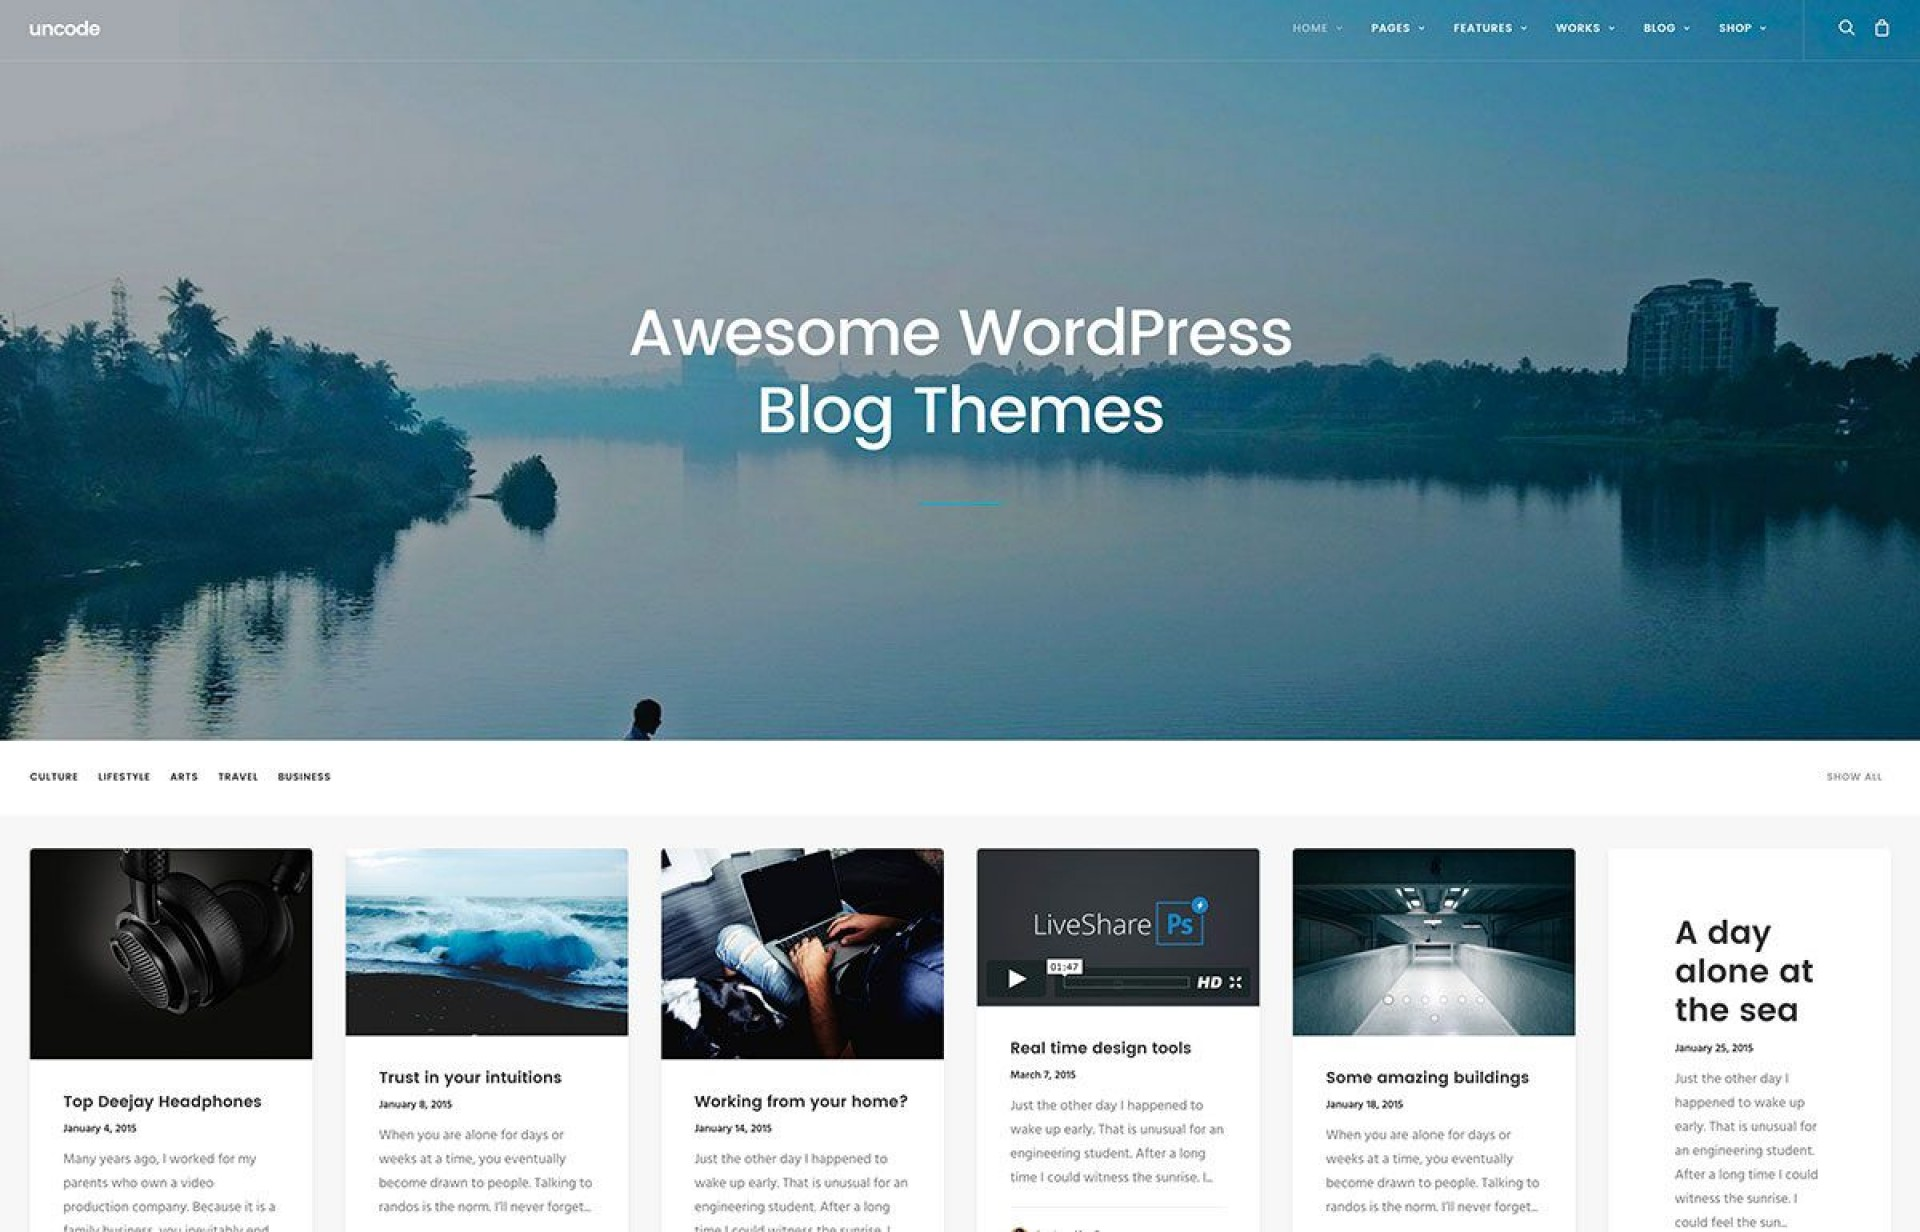 008 Awesome Free Blog Template Wordpres Example  Wordpress Best Travel Theme Food 20201920